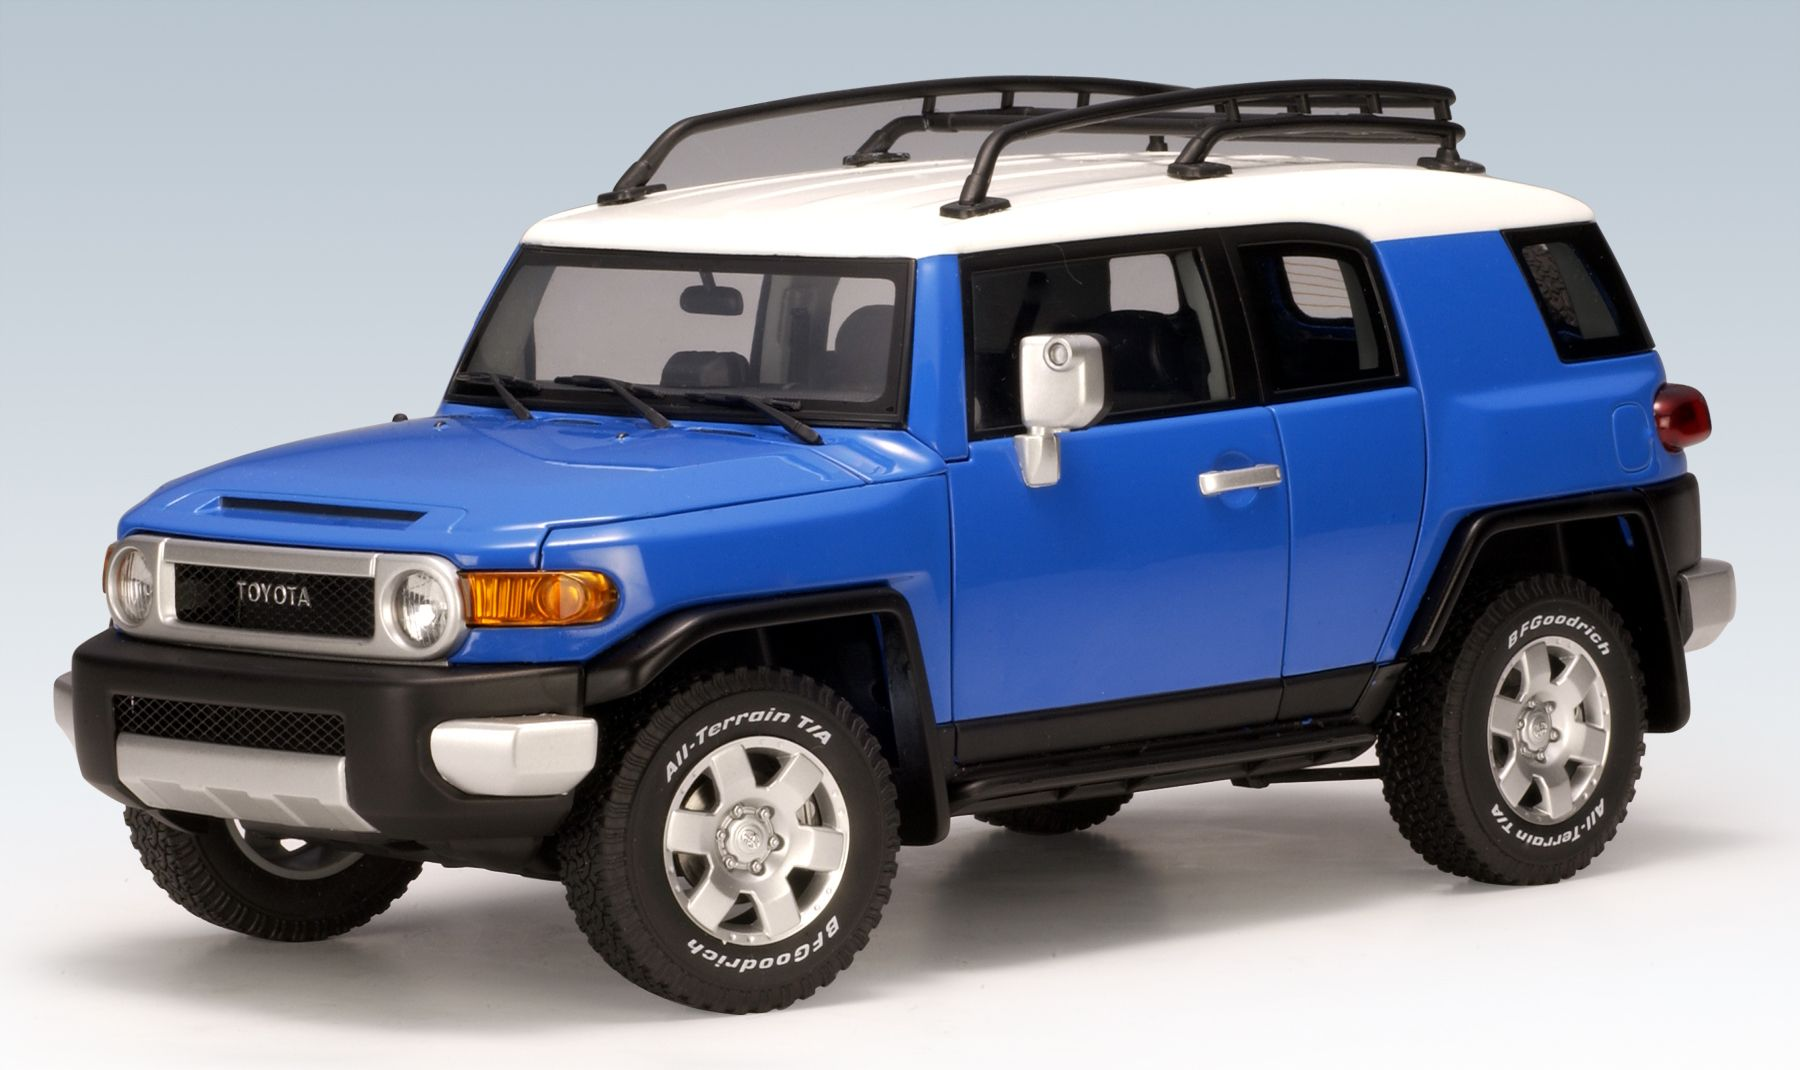 AUTOart Toyota FJ Cruiser  Blue 78855 in 118 scale  142